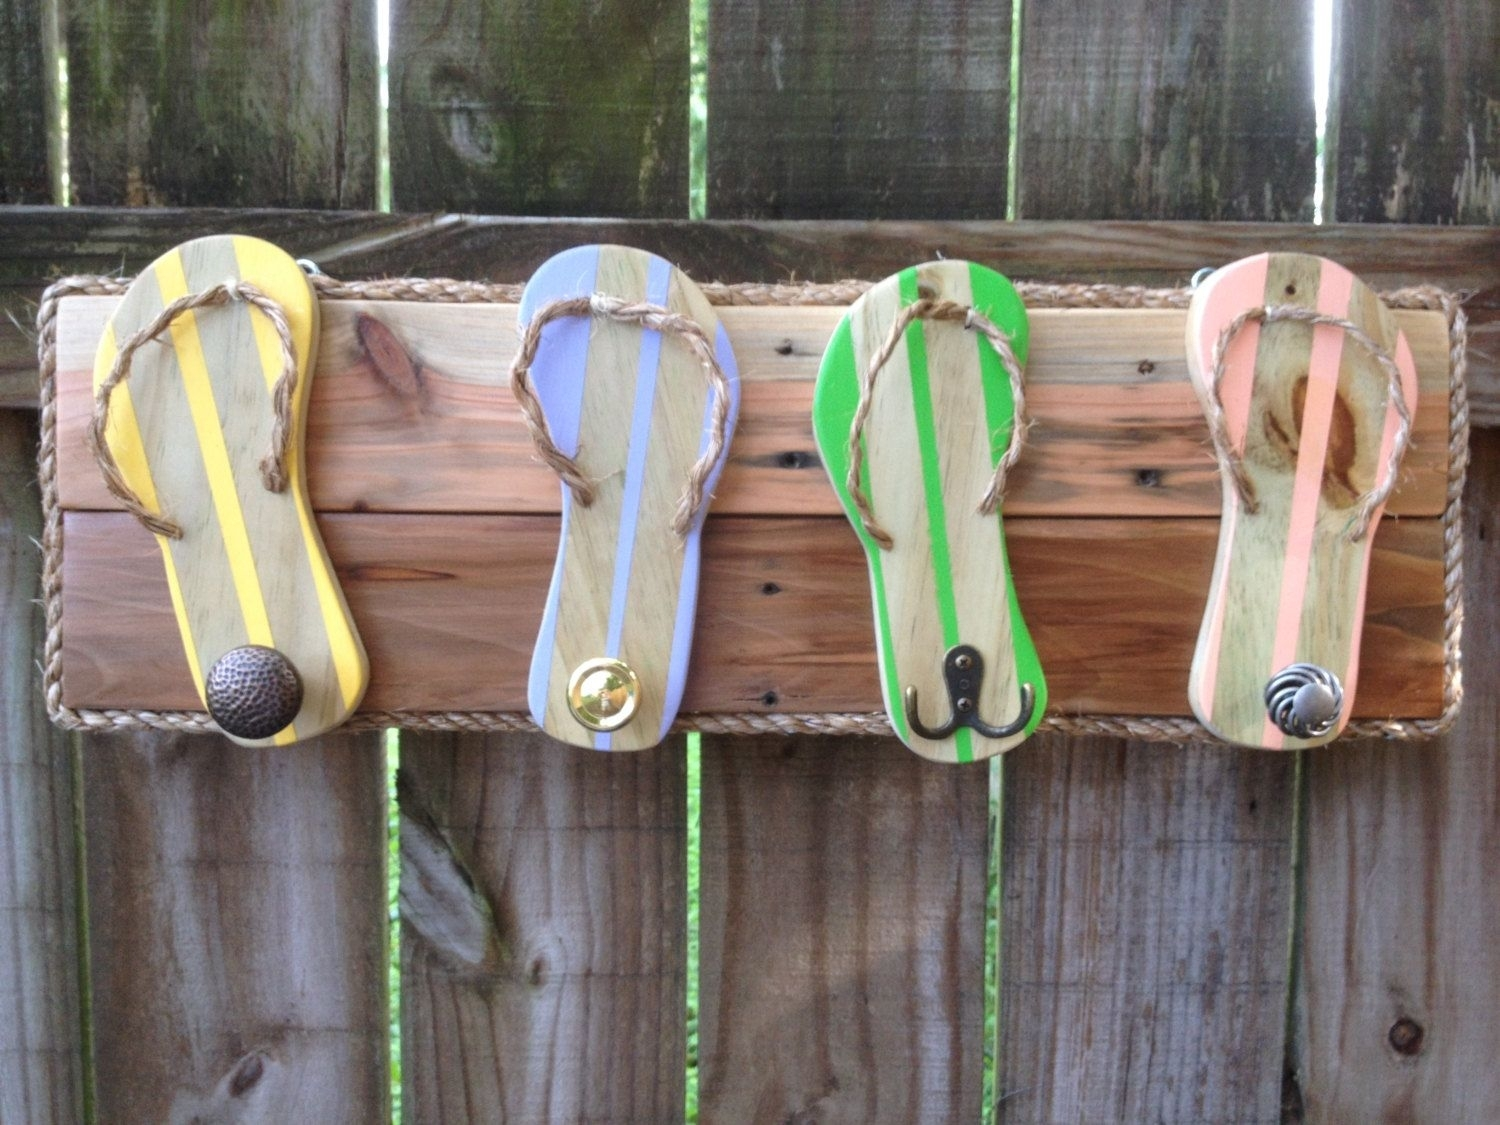 Flip Flop Towel Holder – Outdoor Shower Hooks – Bathroom Towel Rack Regarding Most Current Flip Flop Wall Art (View 13 of 15)